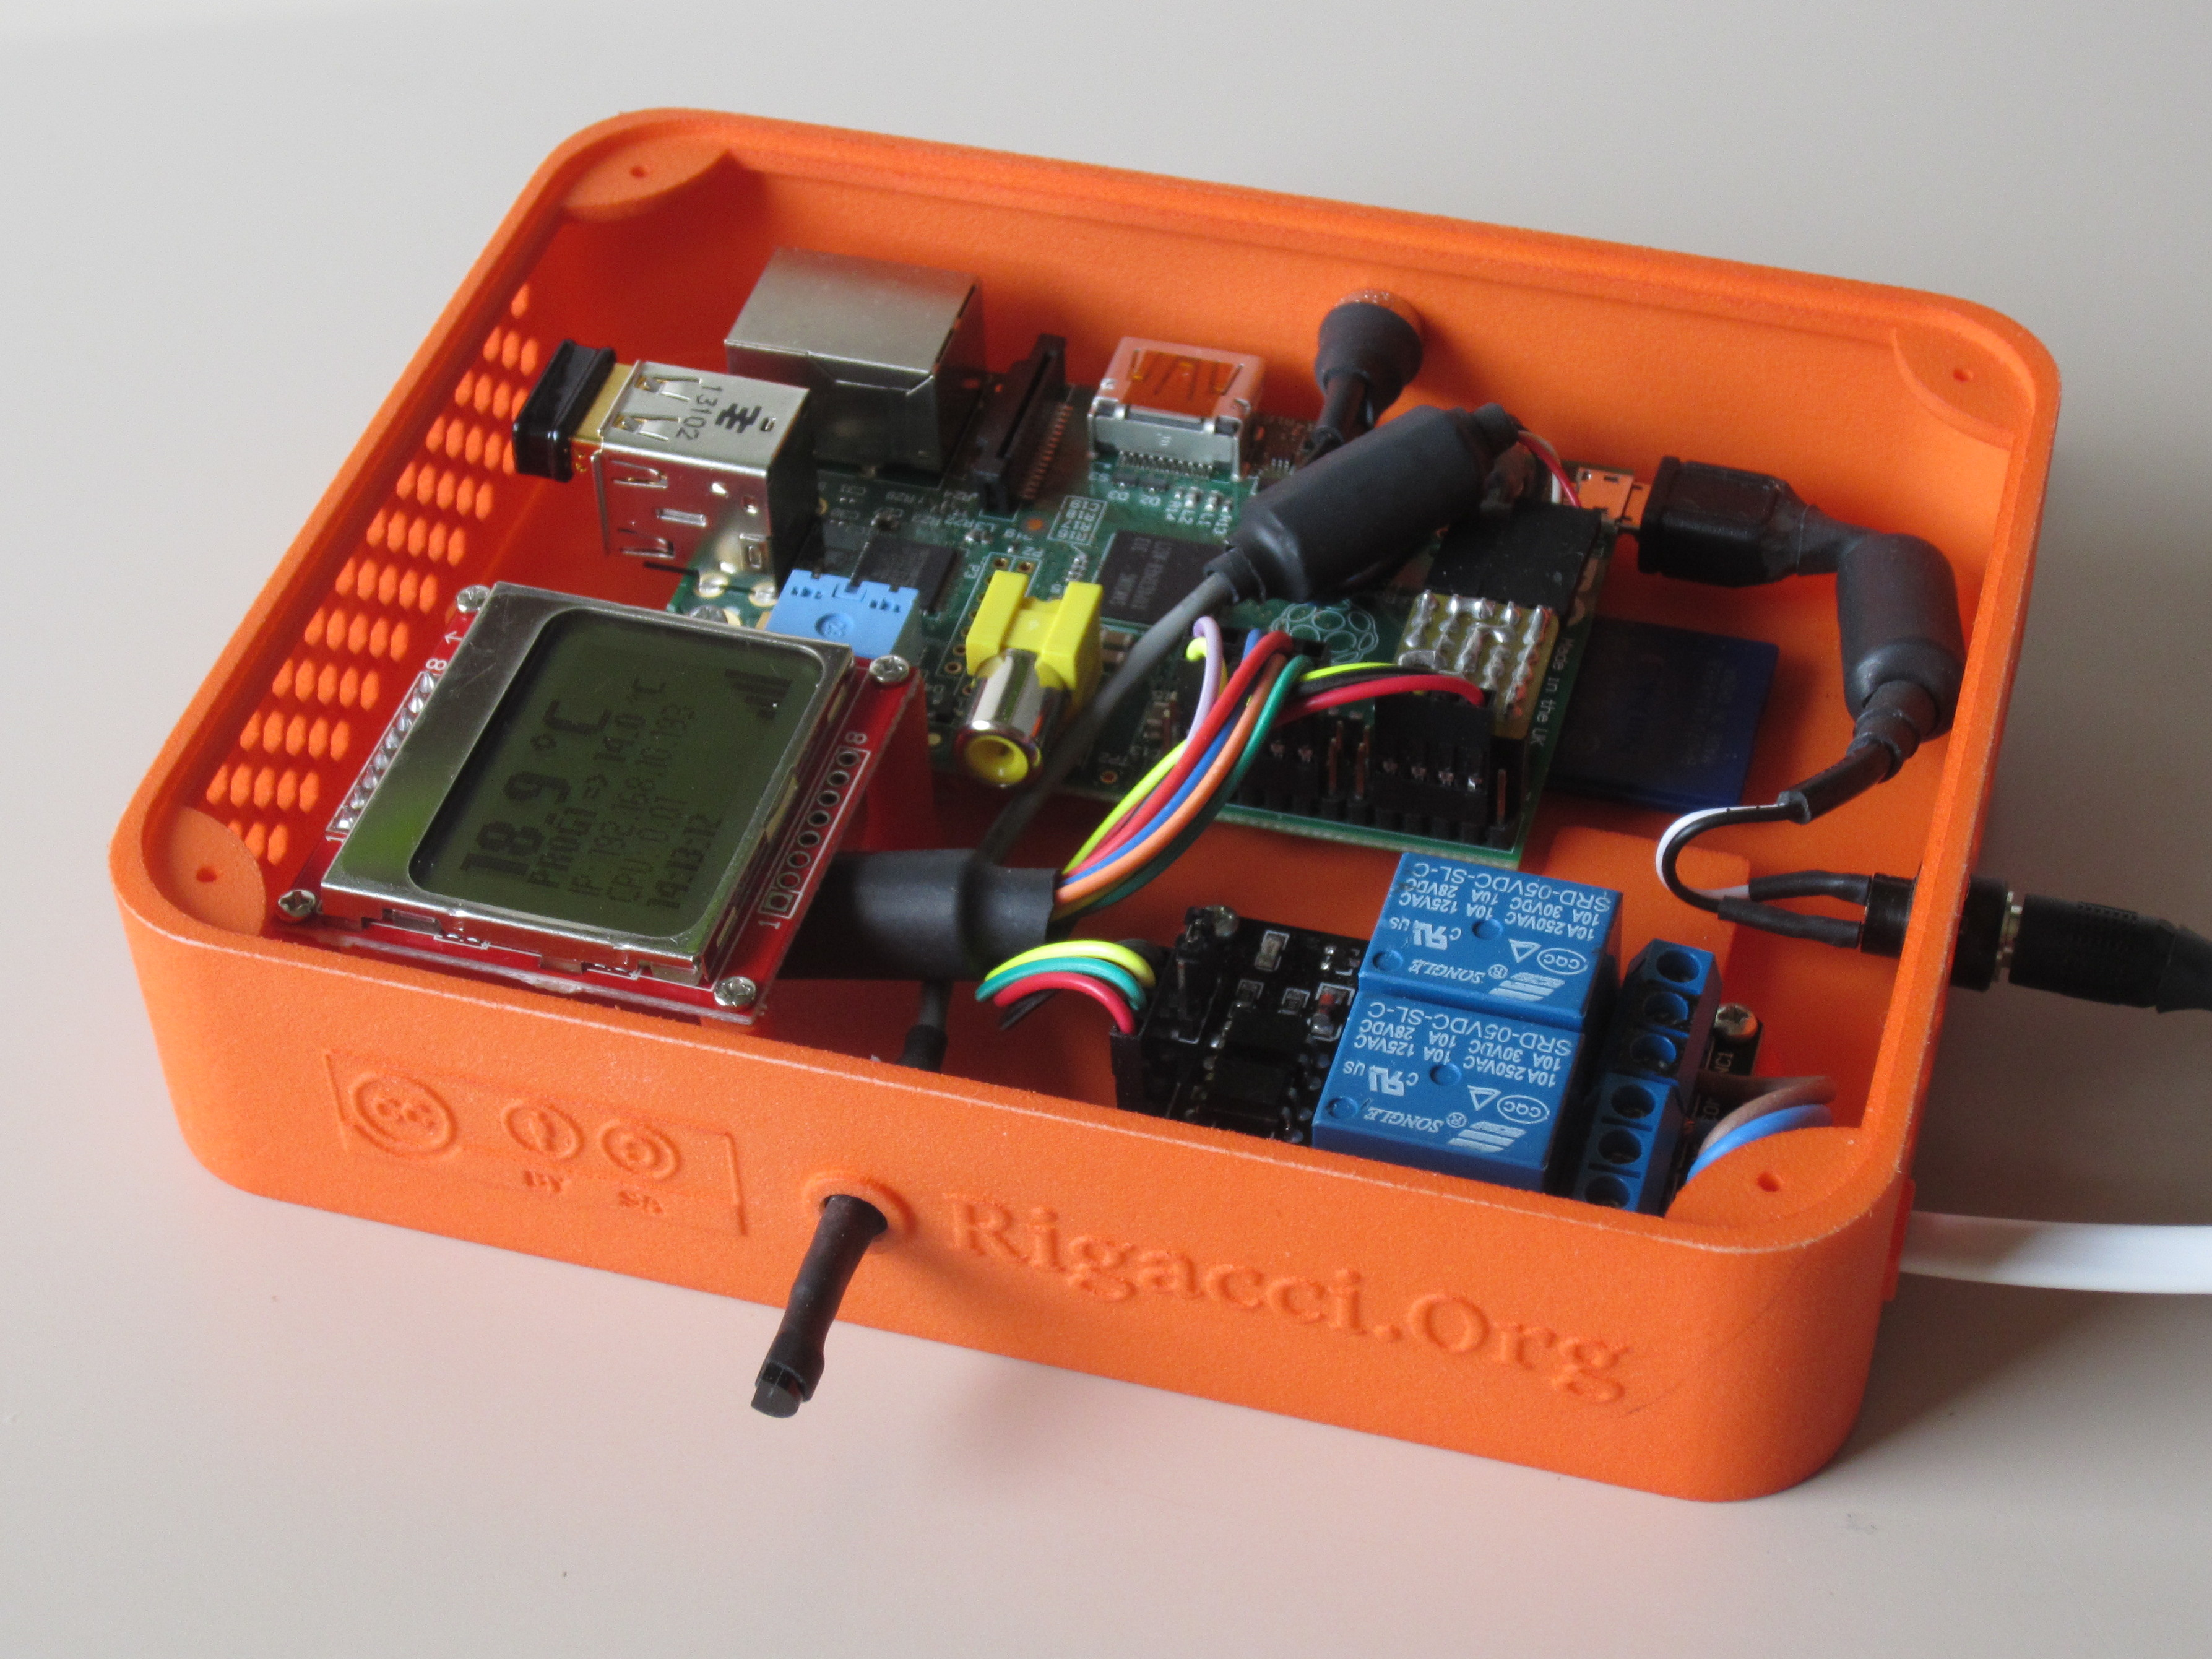 Programmable Thermostat with the Raspberry Pi [rigacci org]